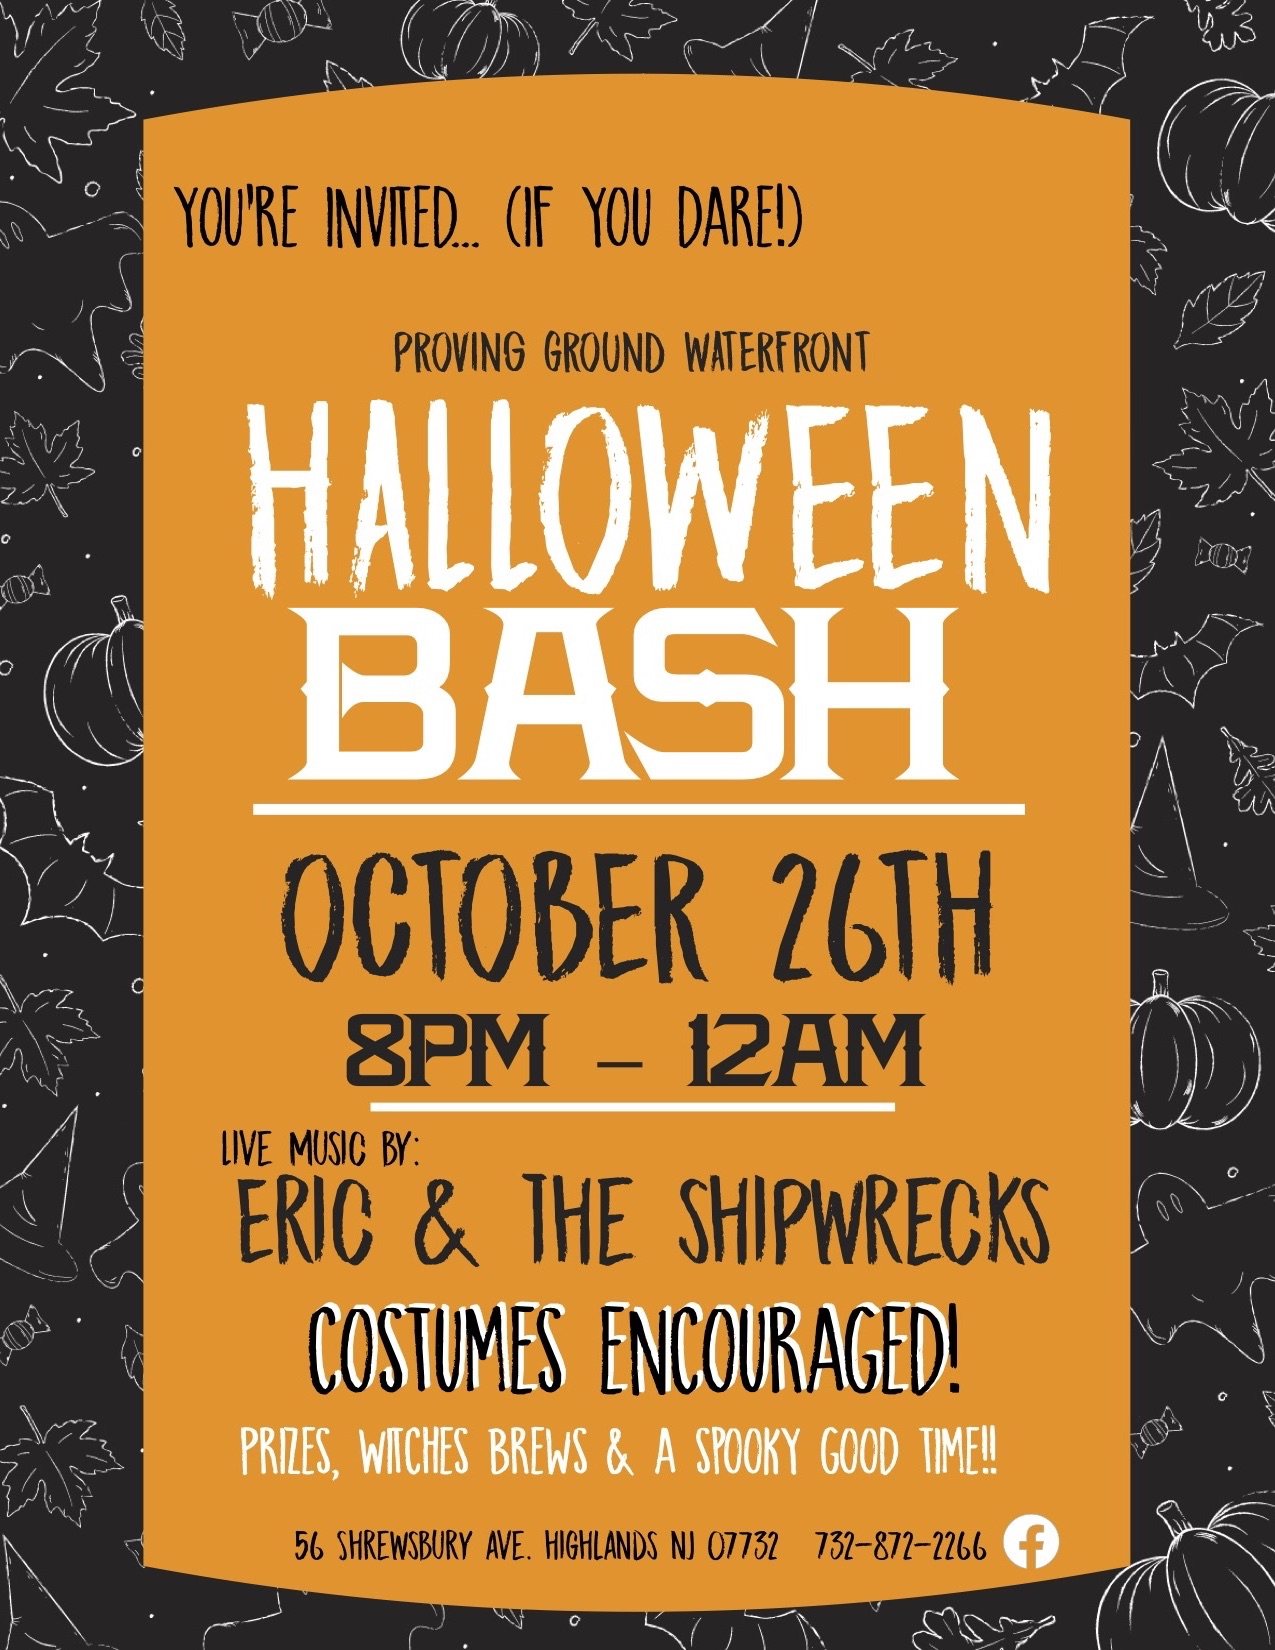 Costume Contest! Drink Specials... witches brew, caldrons, BOOze & more!!